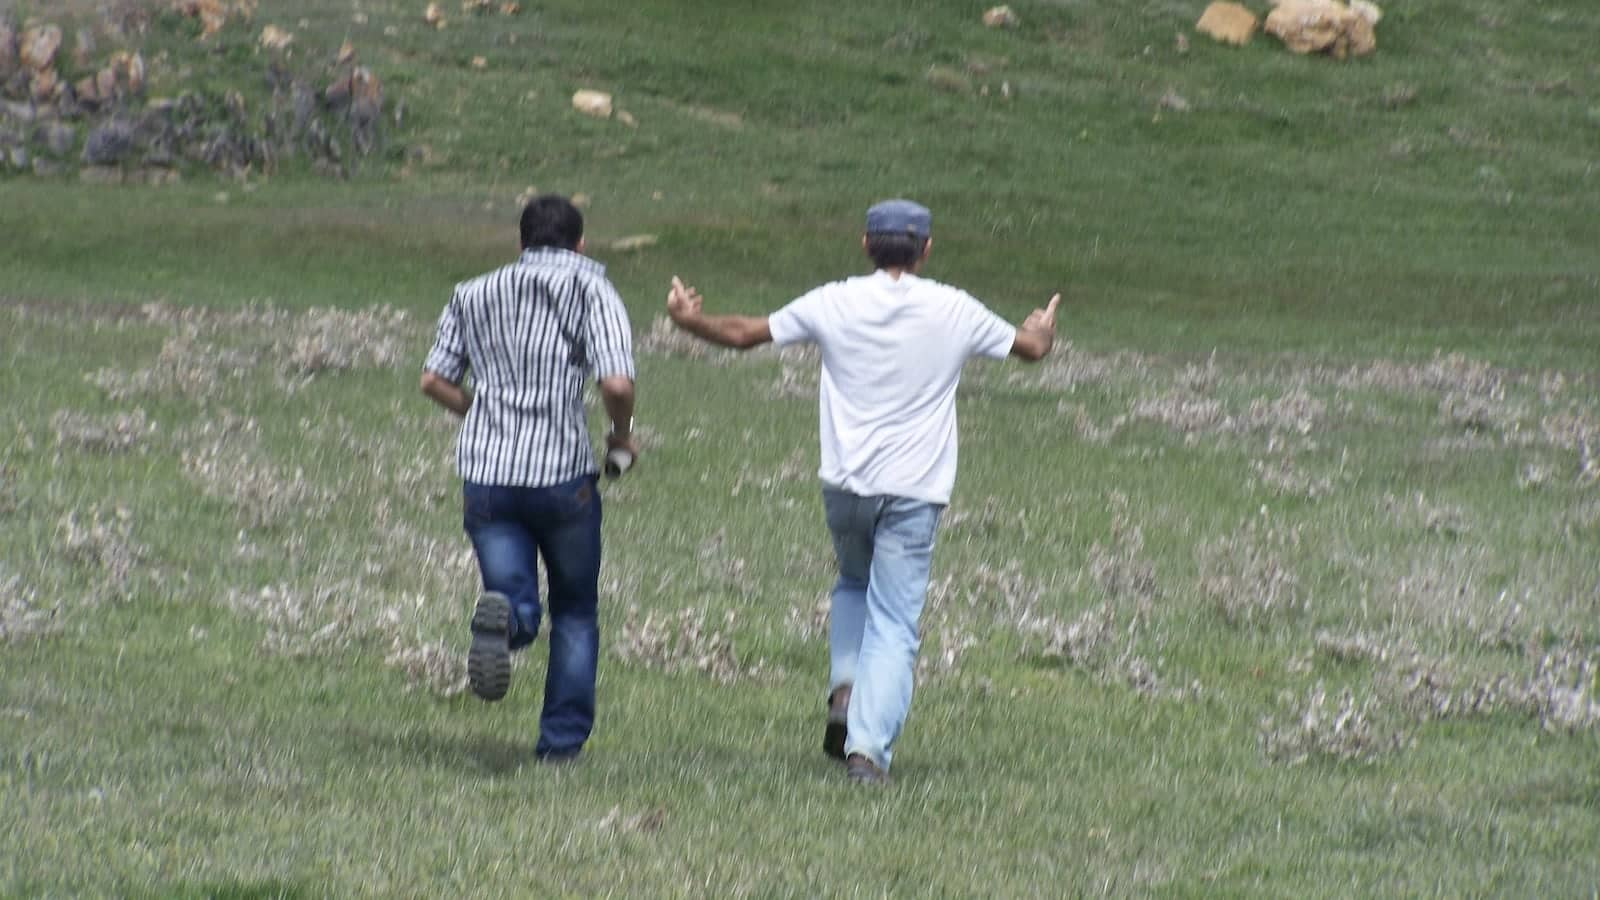 Sepehr gay guy in Iran running with his father